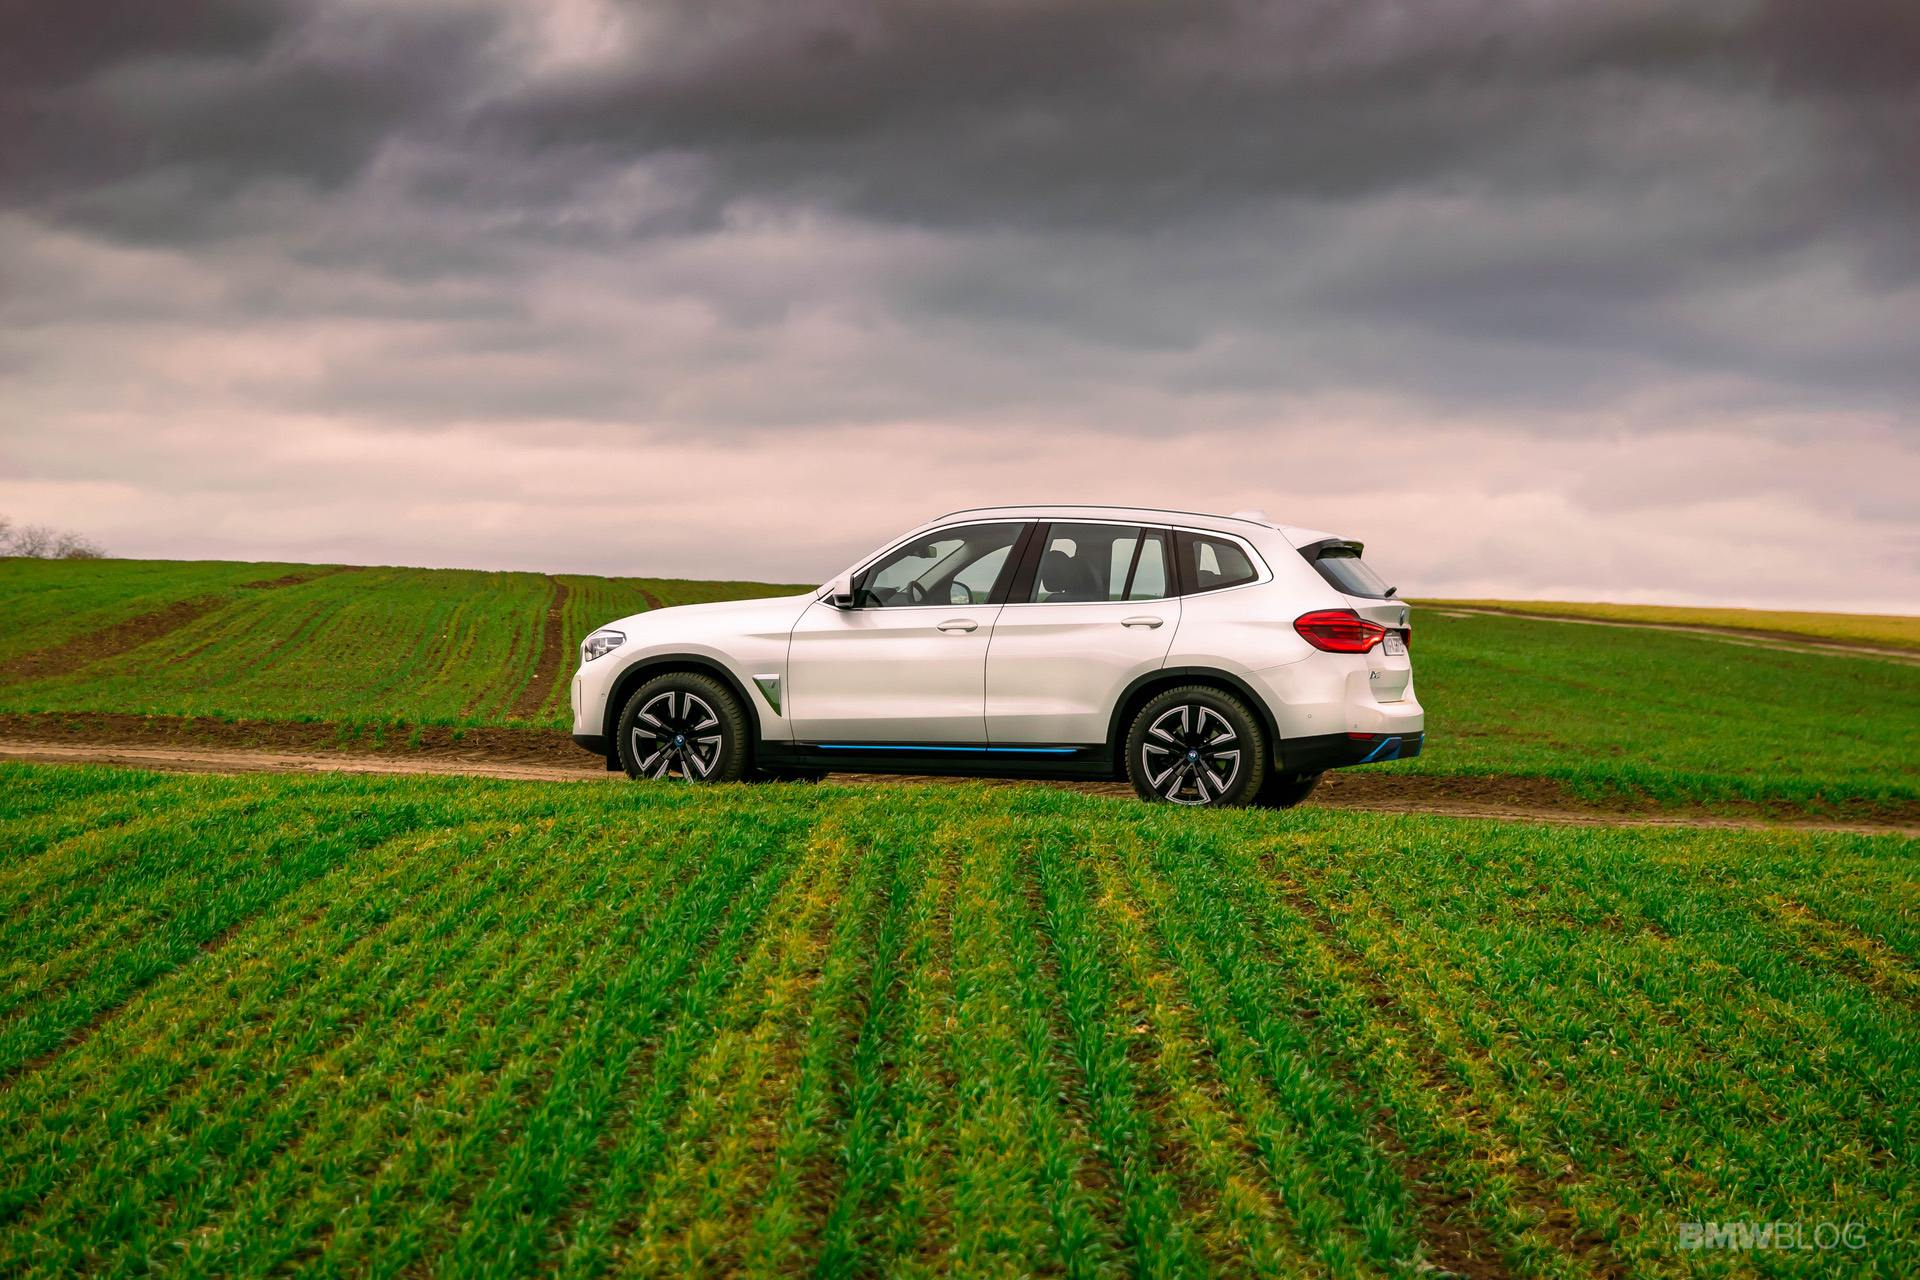 TEST DRIVE: 2021 BMW iX3 Electric SUV – Incremental Steps